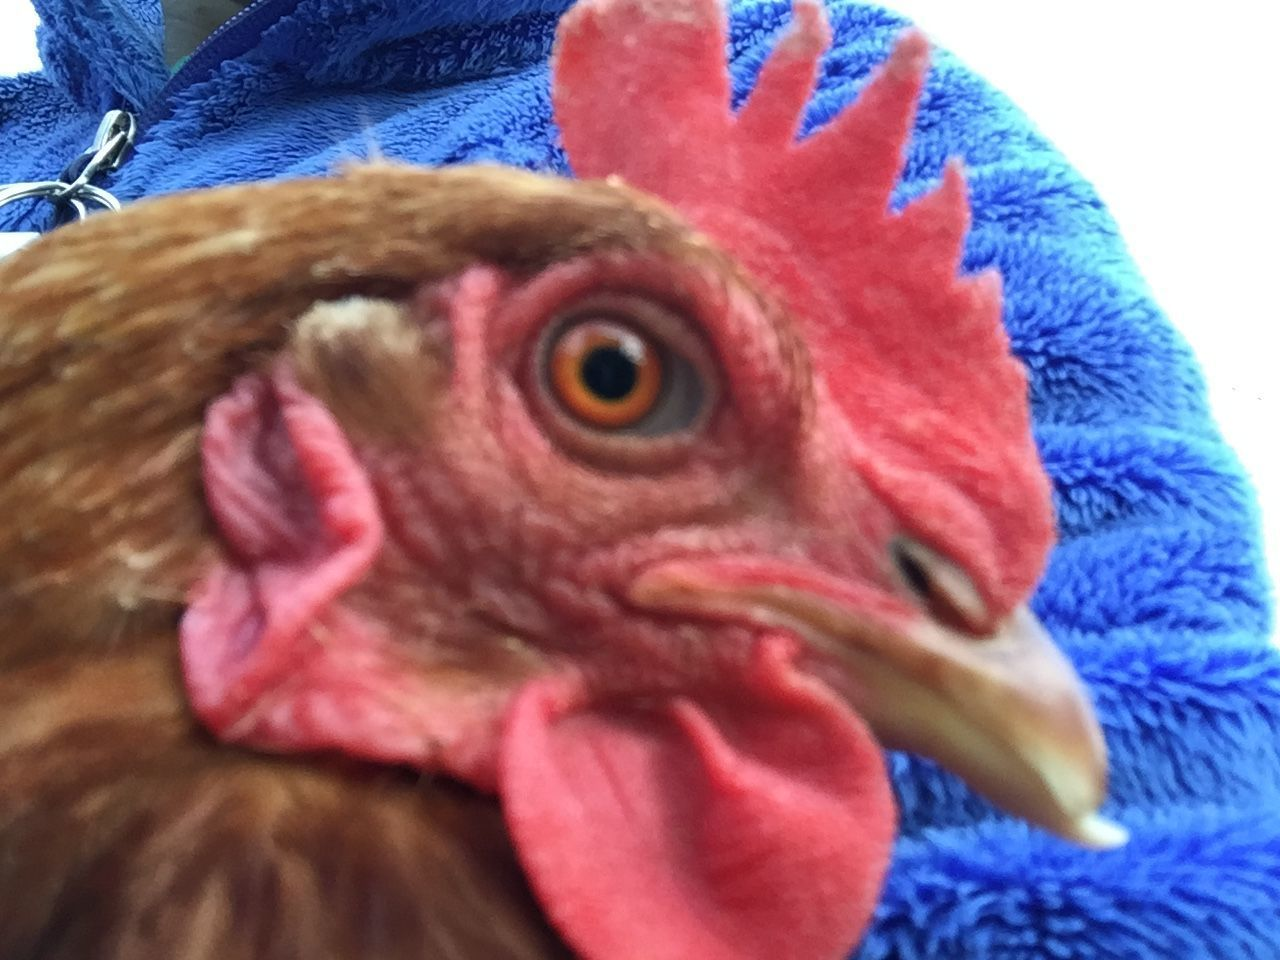 Poultry parent's photos in Hen with with odd pupil